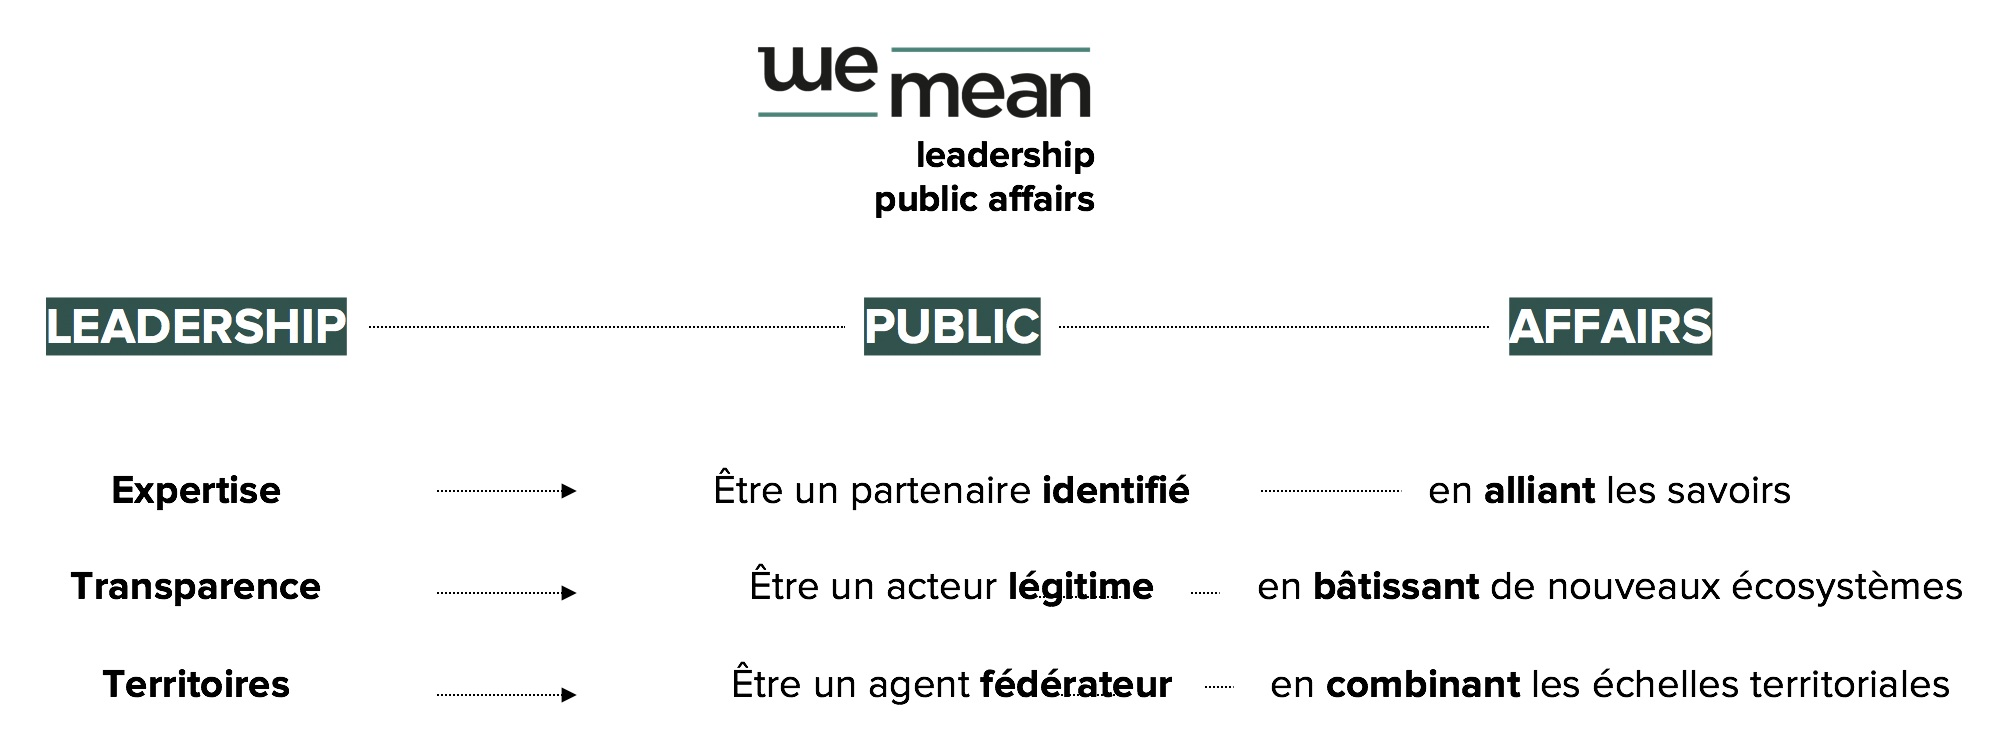 WEMEAN_Leadership__communication_public_affairs_expertise_transparence_territoires_2.png